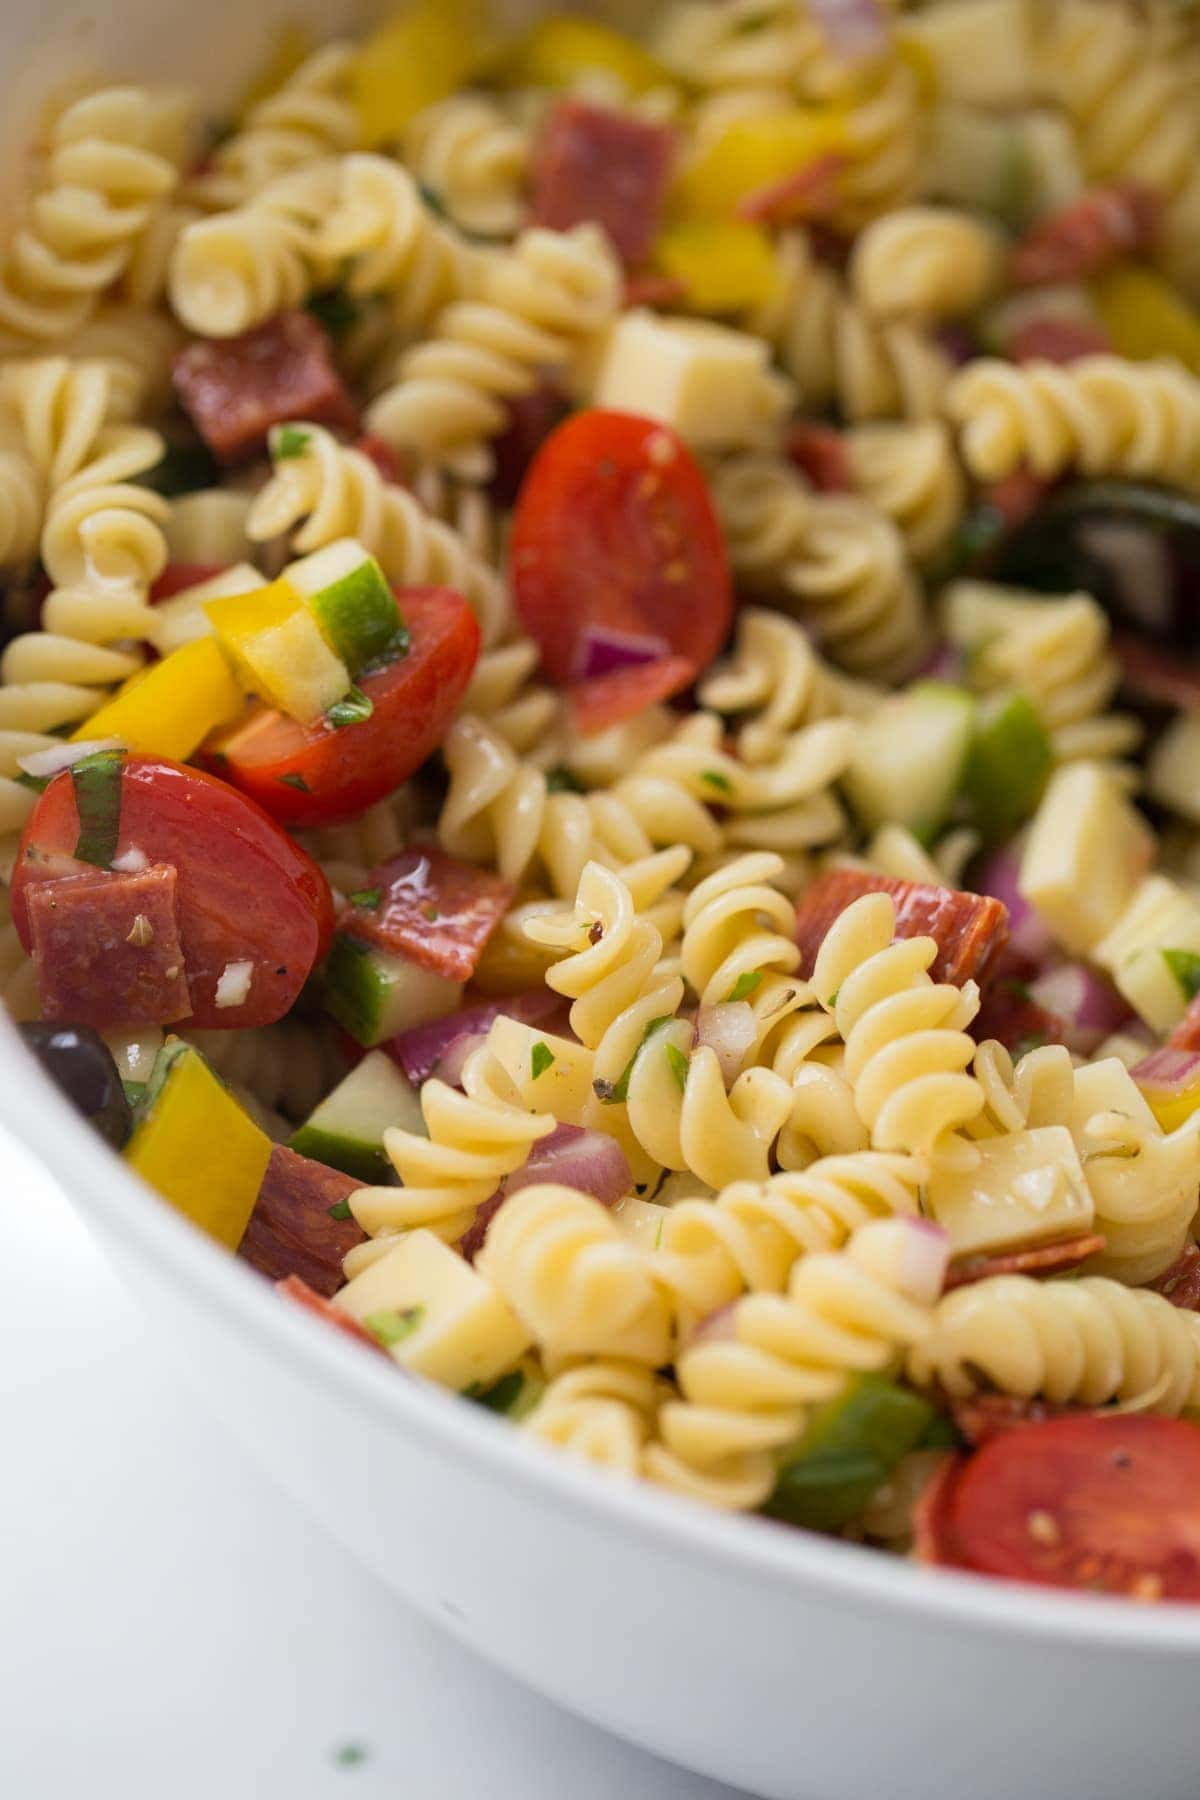 A bowl of Italian pasta salad